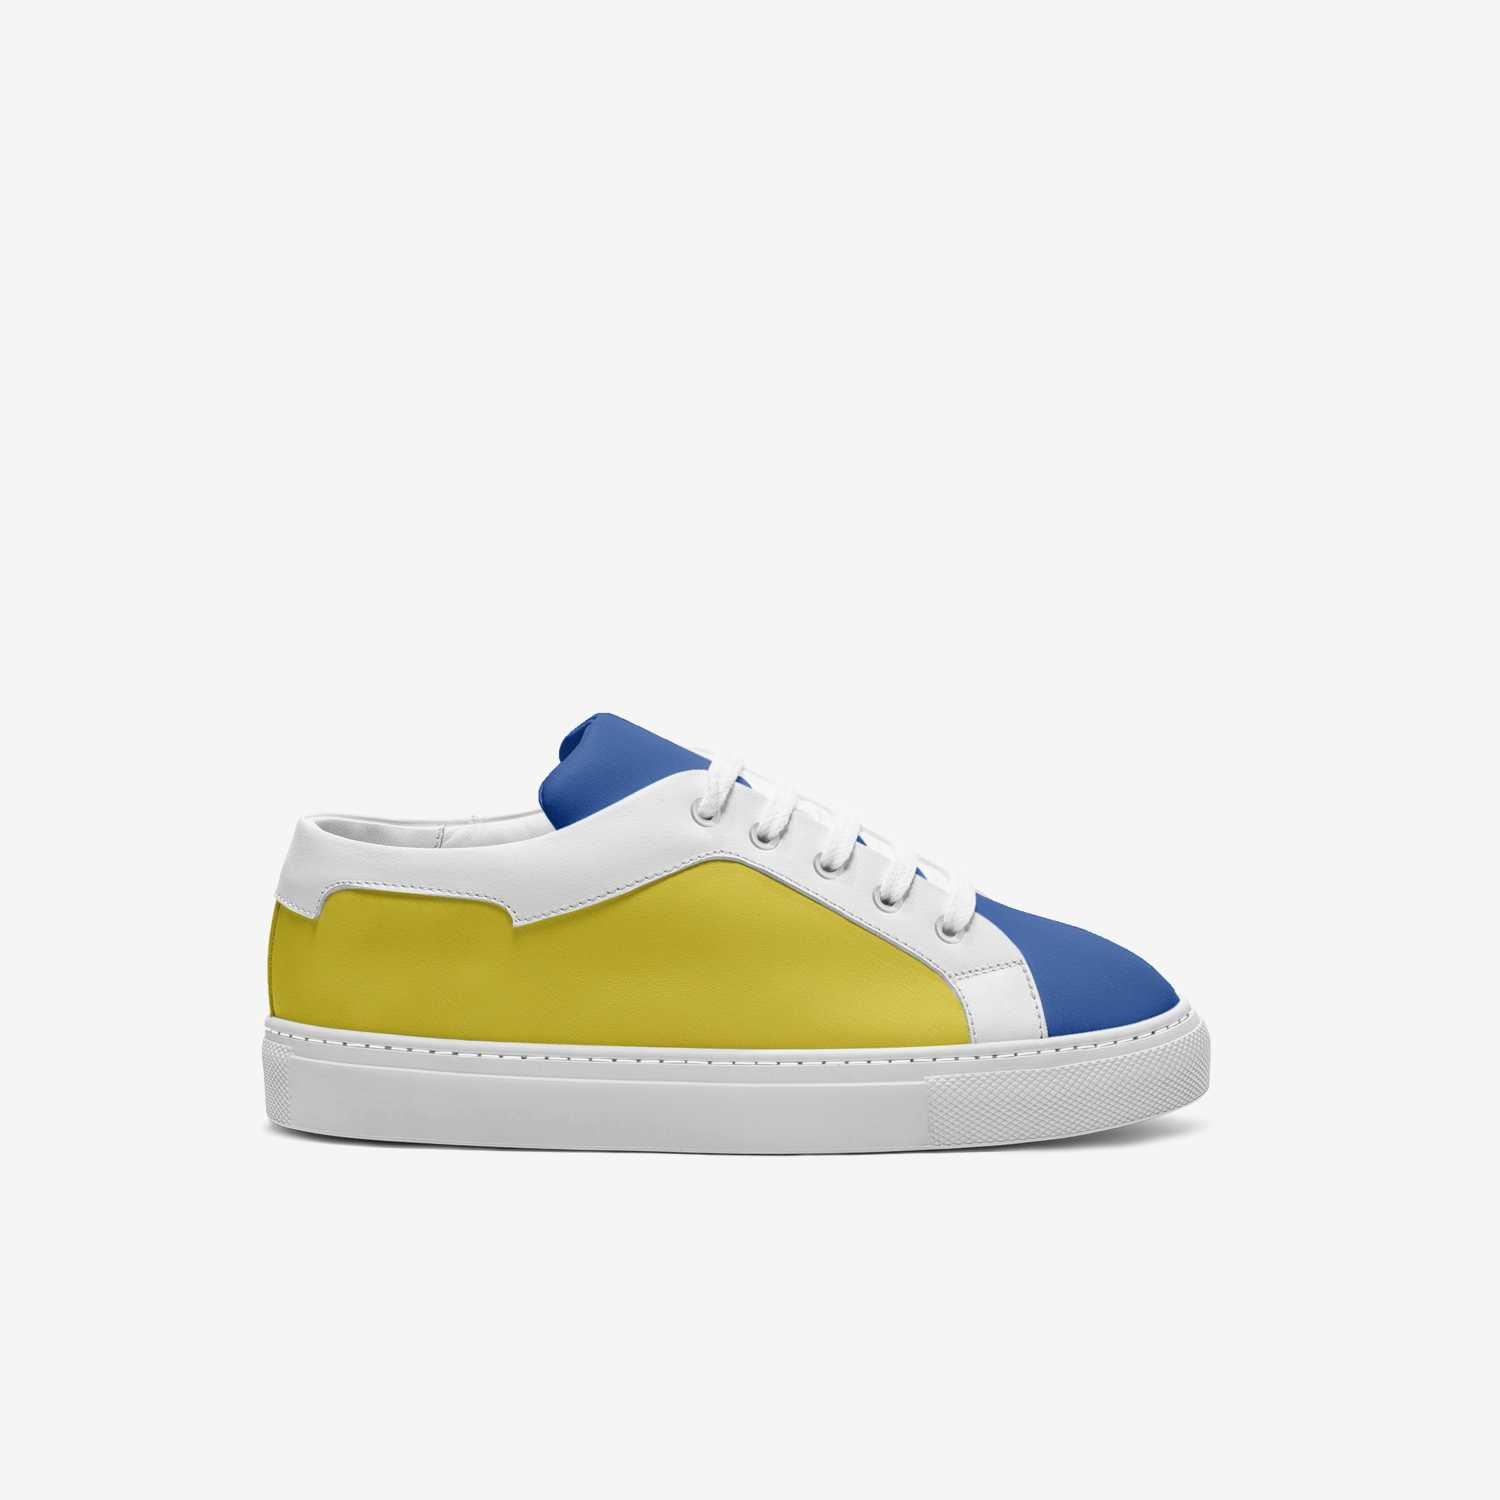 x21o custom made in Italy shoes by Test Pre-orders Unassigned | Side view